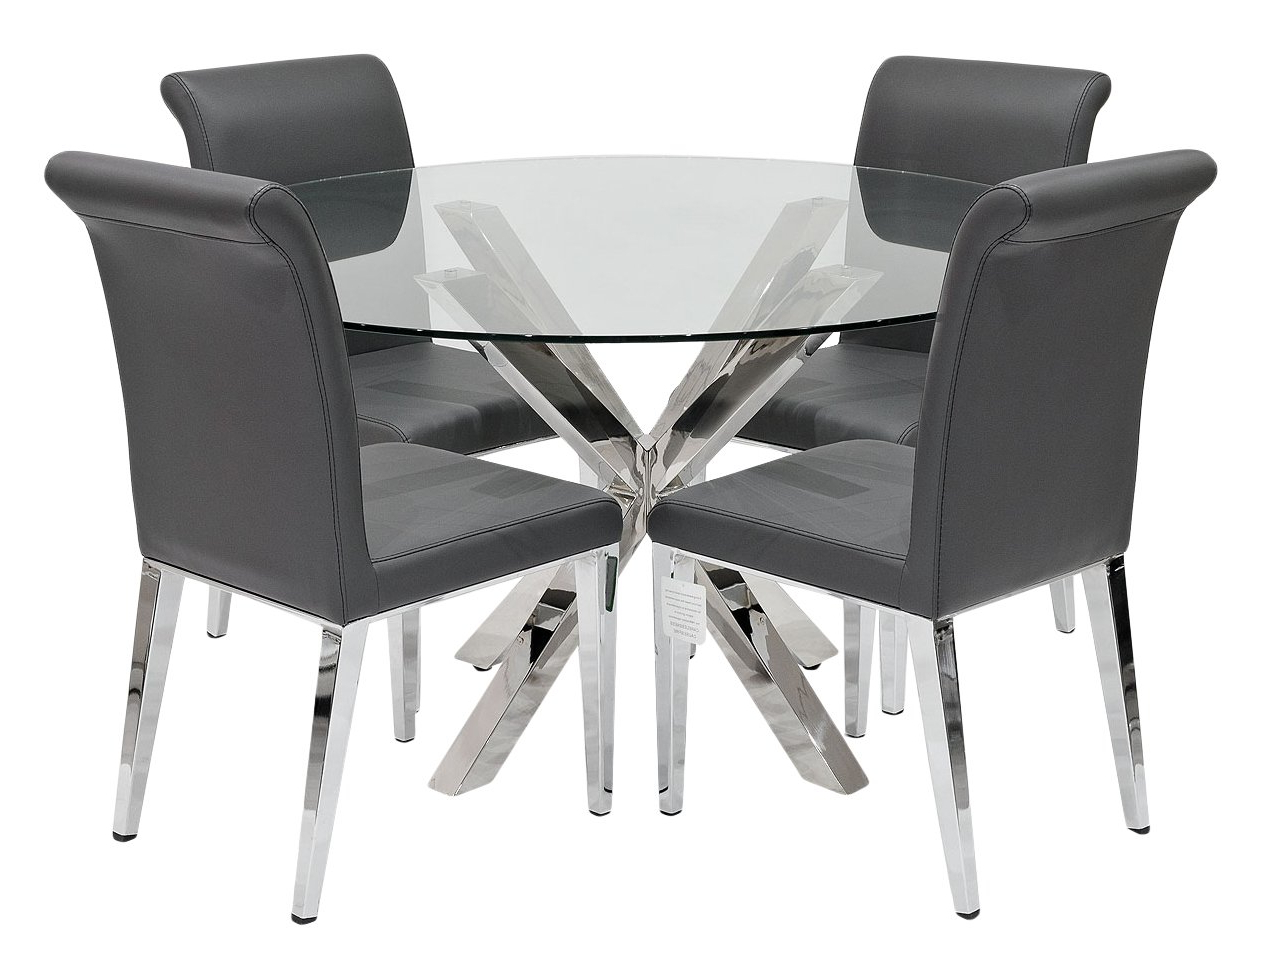 Febland Crossly Table With 4 Dark Grey Kirkland Dining Within Favorite Eames Style Dining Tables With Chromed Leg And Tempered Glass Top (View 13 of 30)